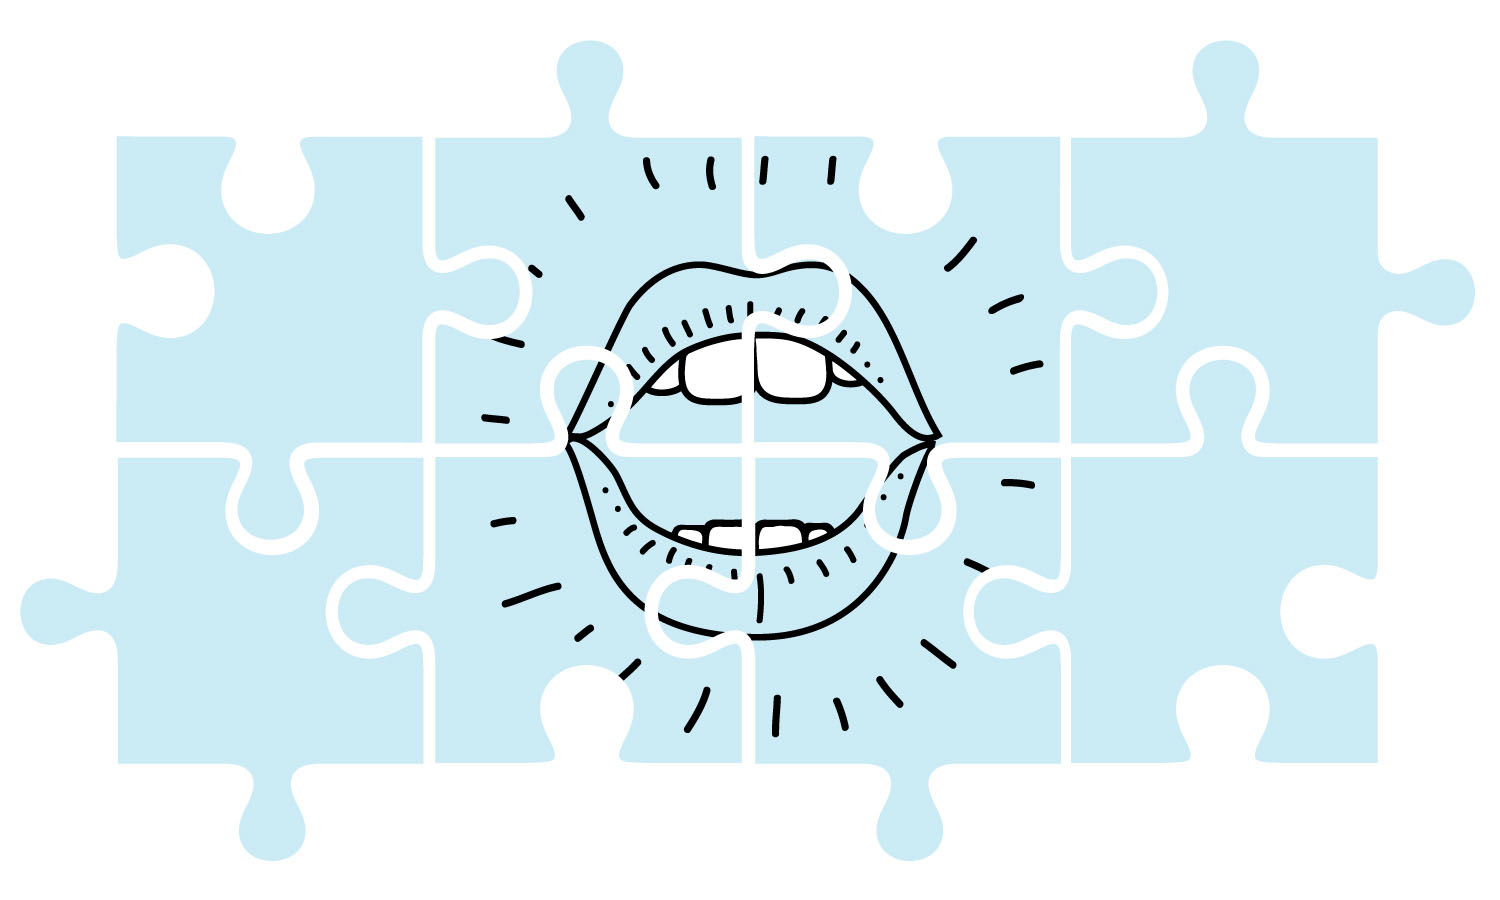 Skills & tools for shaping imperfect human conversation into a podcast episode. This illustration shows six puzzle pieces joining together to form a speaking mouth.